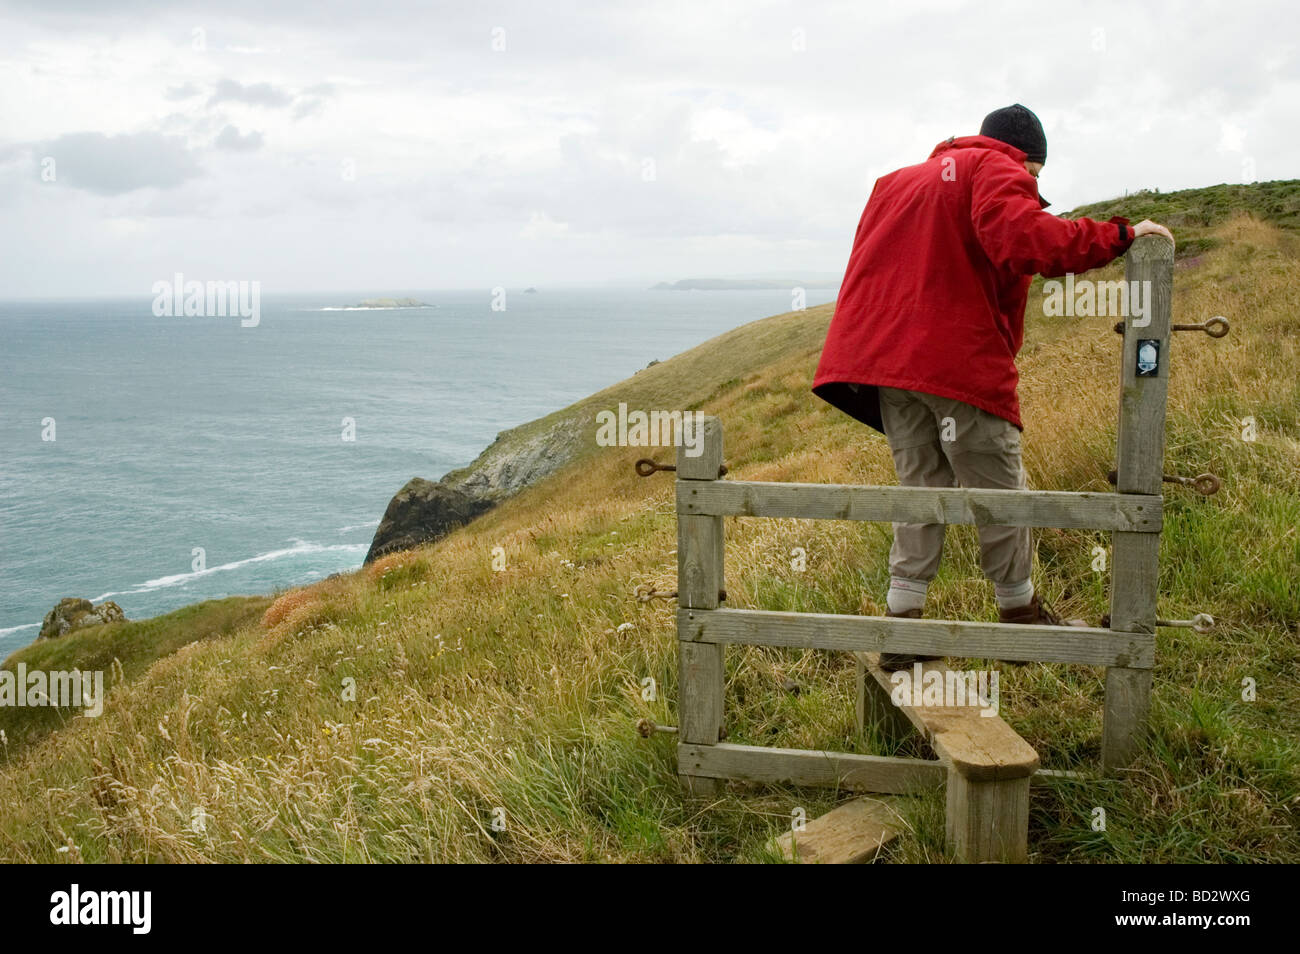 A female walker on the South West Coastal Path at Trevose Head, Cornwall, England - Stock Image